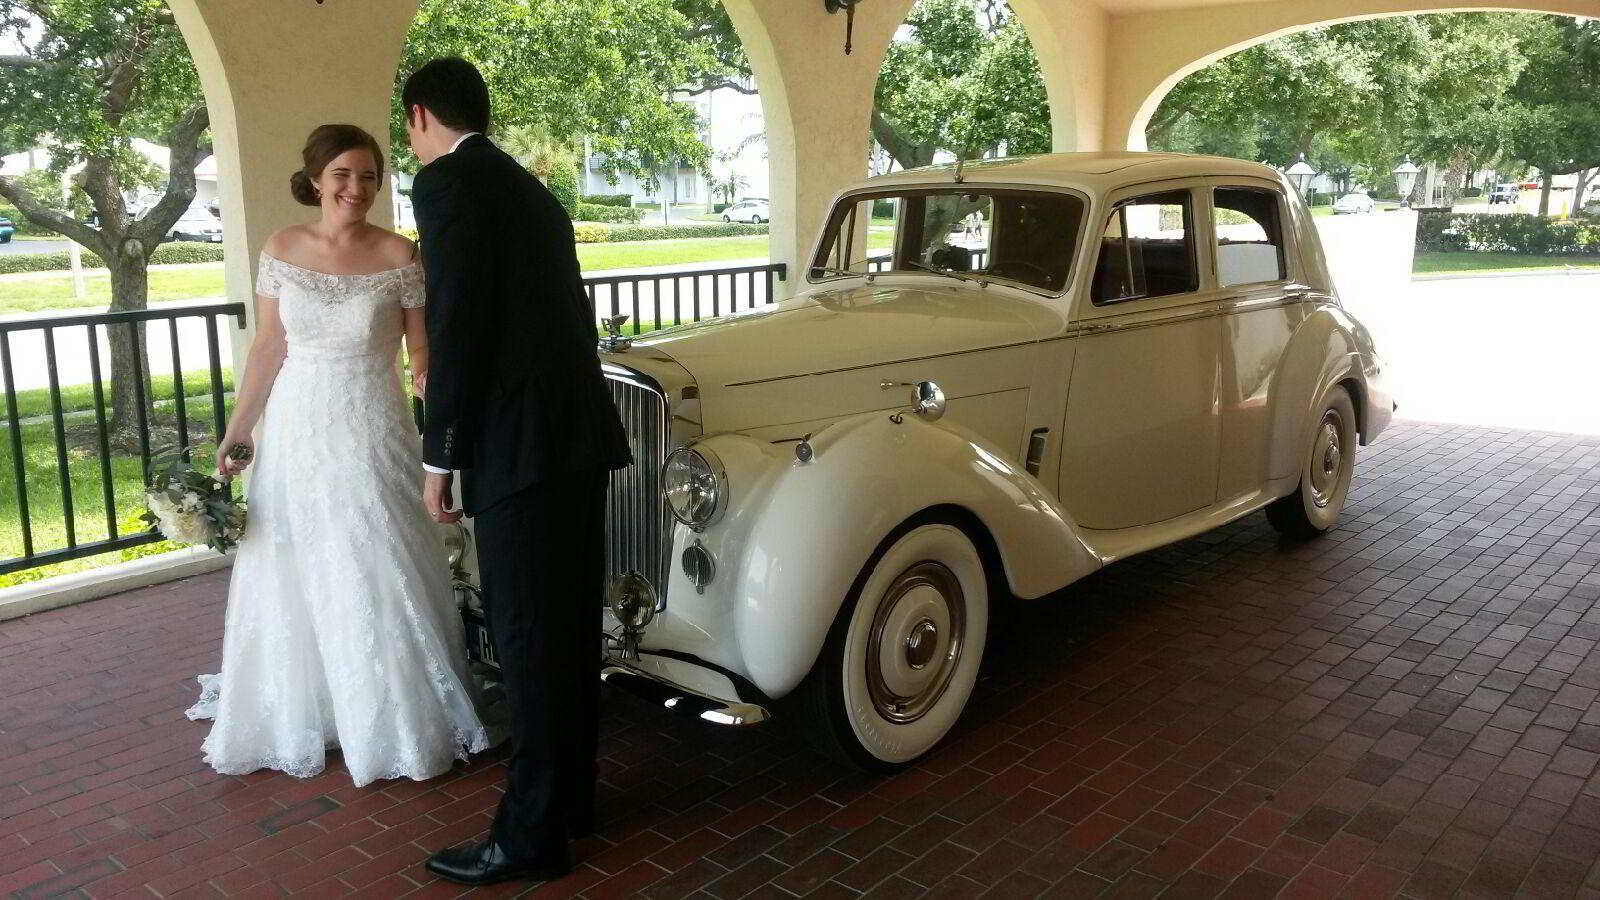 Rolls Royce Wedding Transportation Rental Exterior, Clearwater, Florida